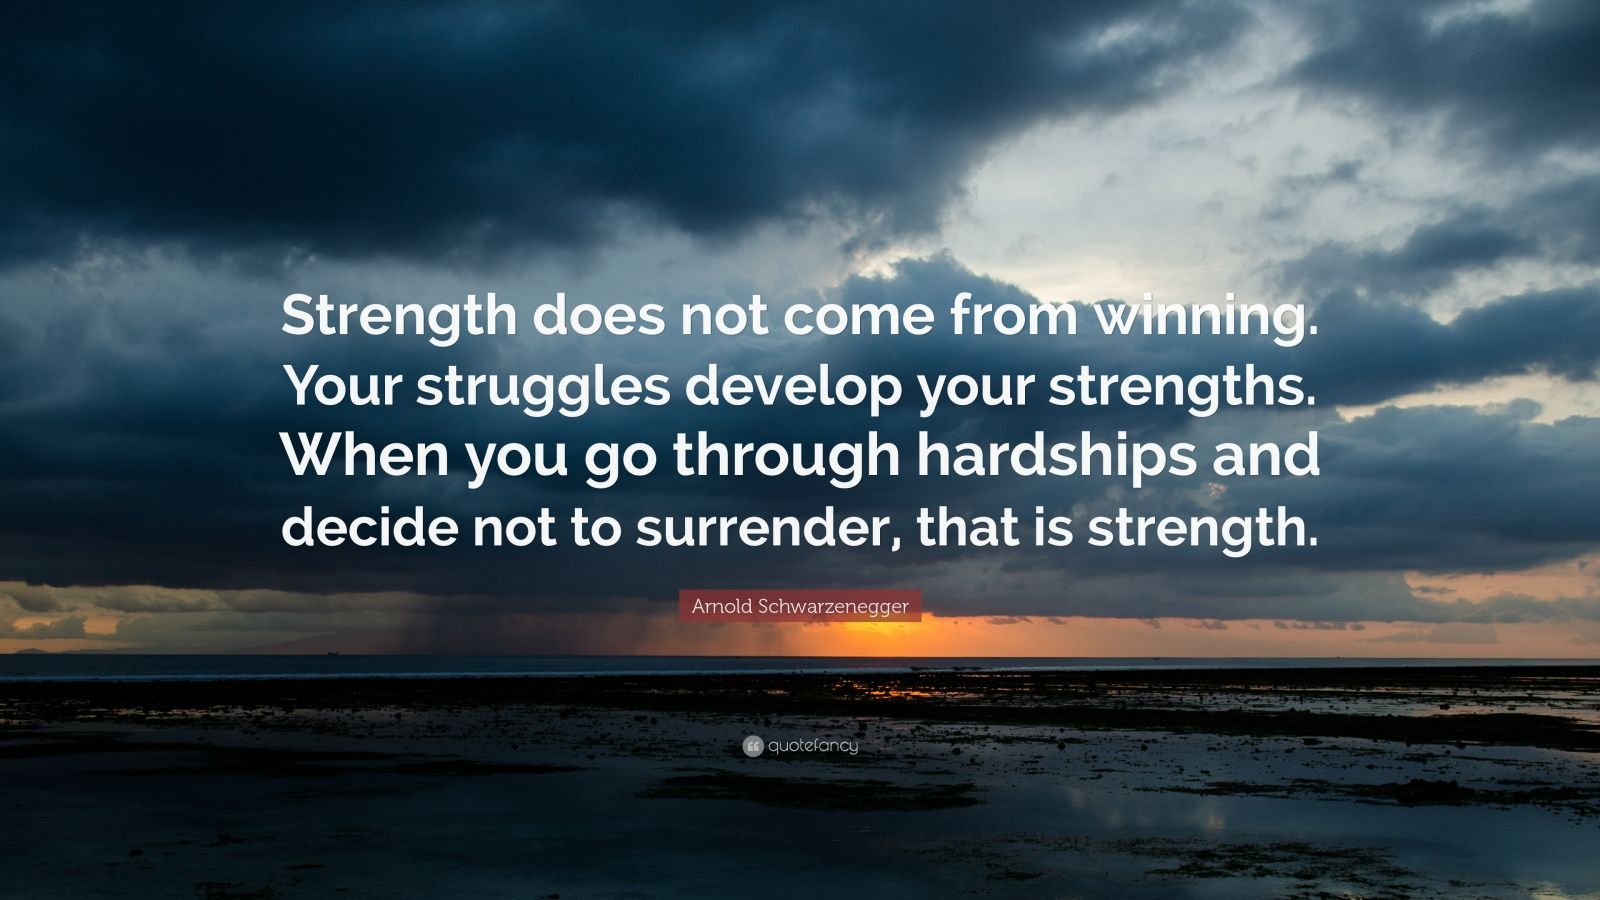 Comfort Zone Motivational Quotes Wallpaper Arnold Schwarzenegger Quote Strength Does Not Come From